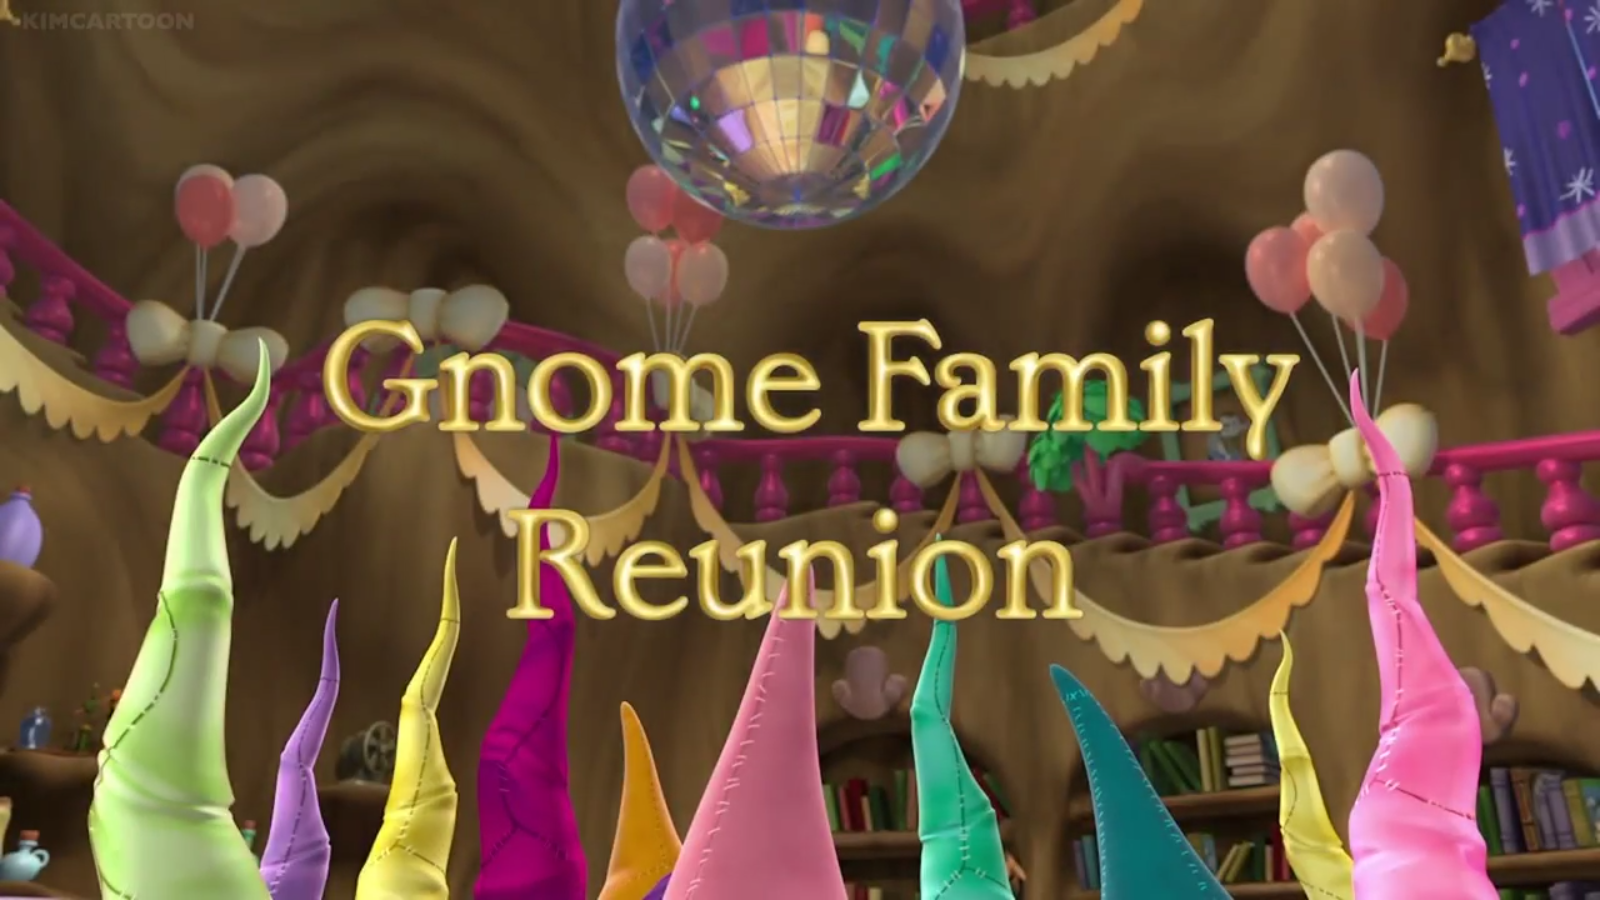 Gnome Family Reunion | Disney Wiki | FANDOM powered by Wikia